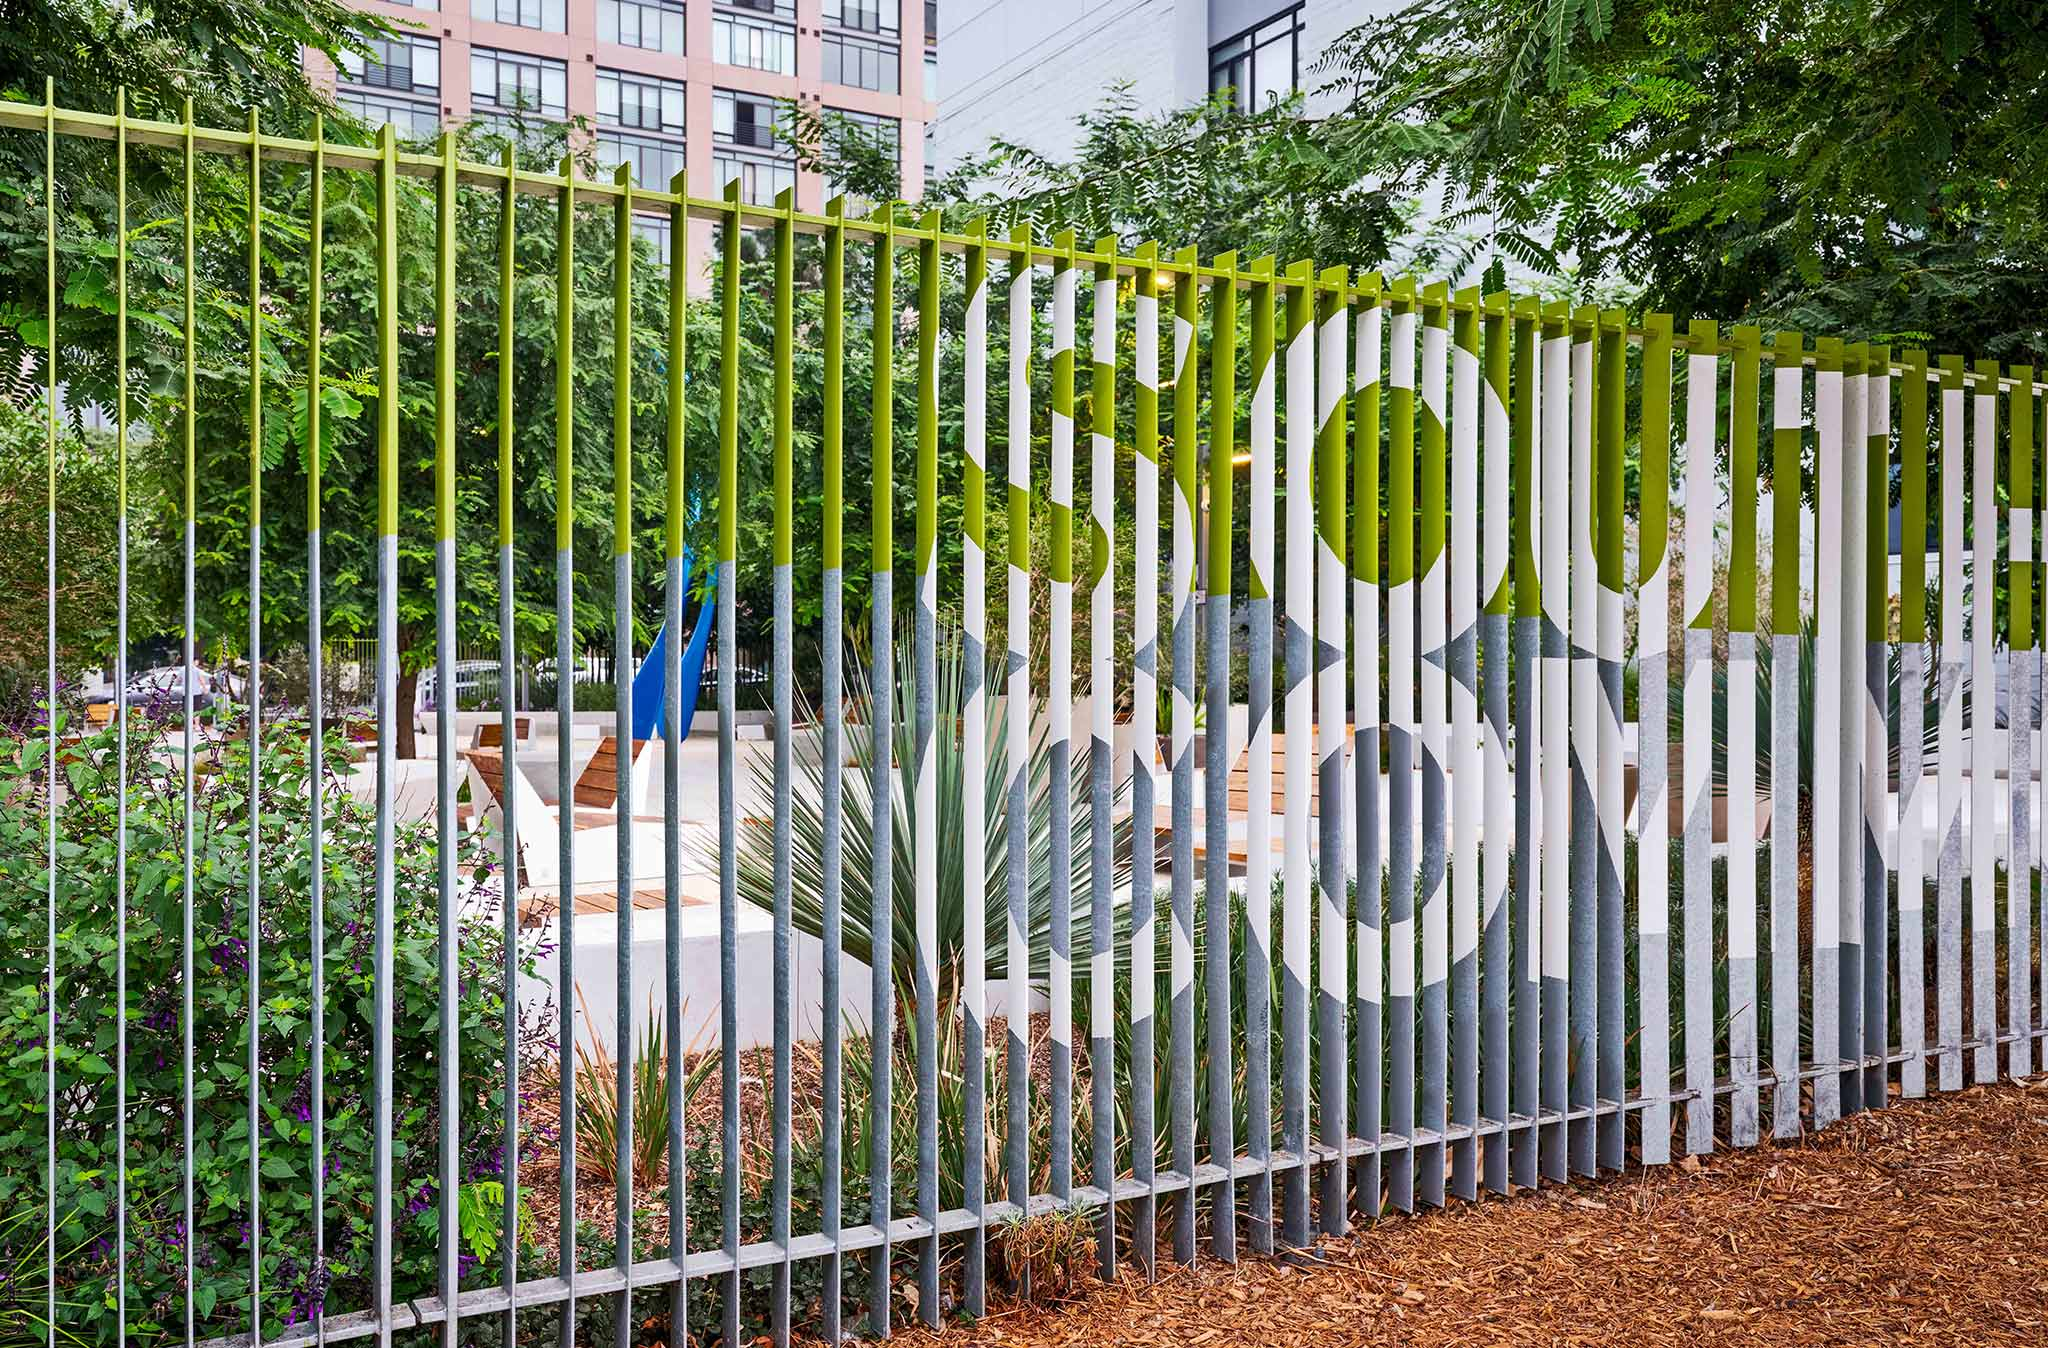 """fence with """"south park commons"""" painted on the side"""